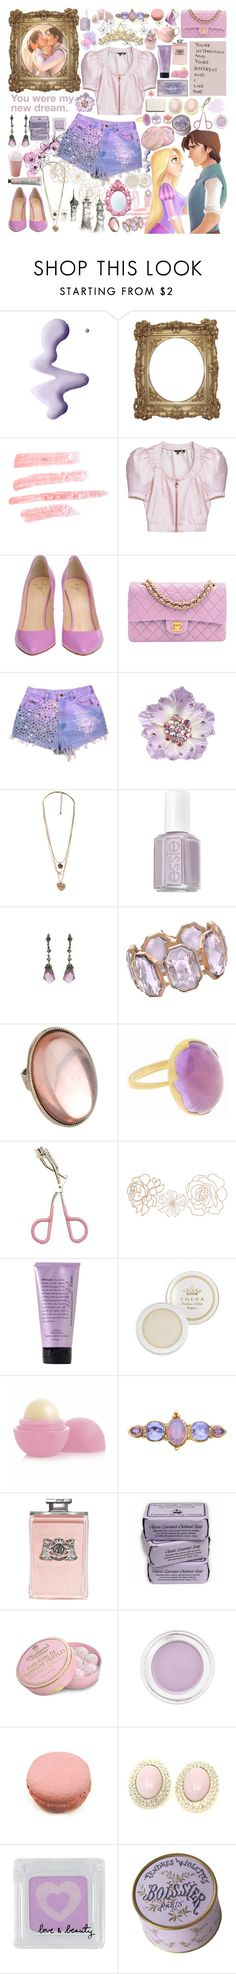 """""""and at last i see the light..."""" by juicyjams ❤ liked on Polyvore featuring WALL, Topshop, Mulberry, Giuseppe Zanotti, Tarina Tarantino, Forever 21, Essie, Karlsson, Irene Neuwirth and Annette Ferdinandsen"""